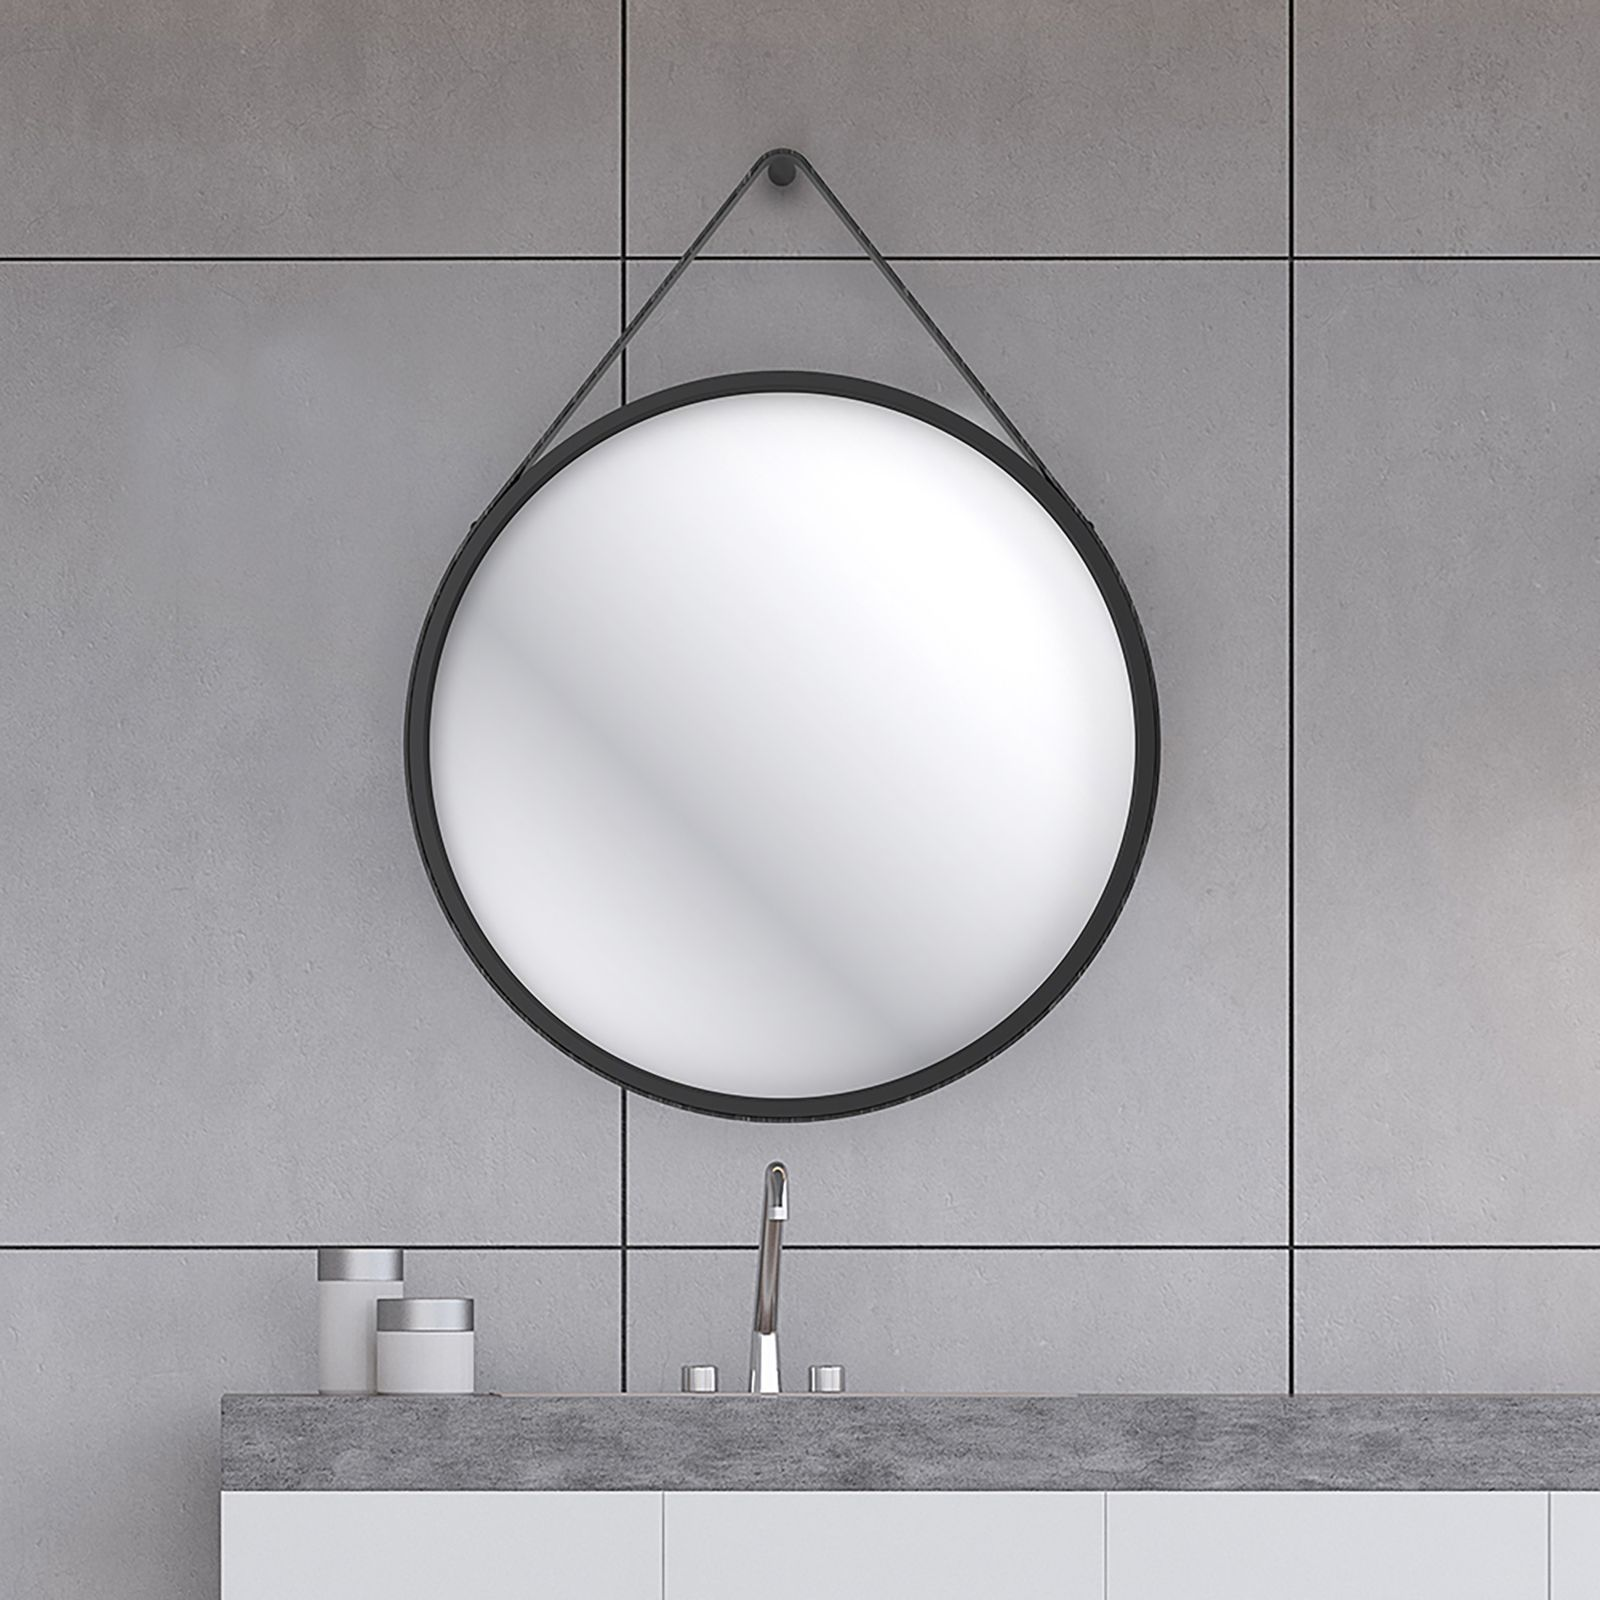 Home Design Round 60cm Bathroom Mirror Black Round Mirror Bathroom Bathroom Mirrors Uk Black Bathroom Mirrors